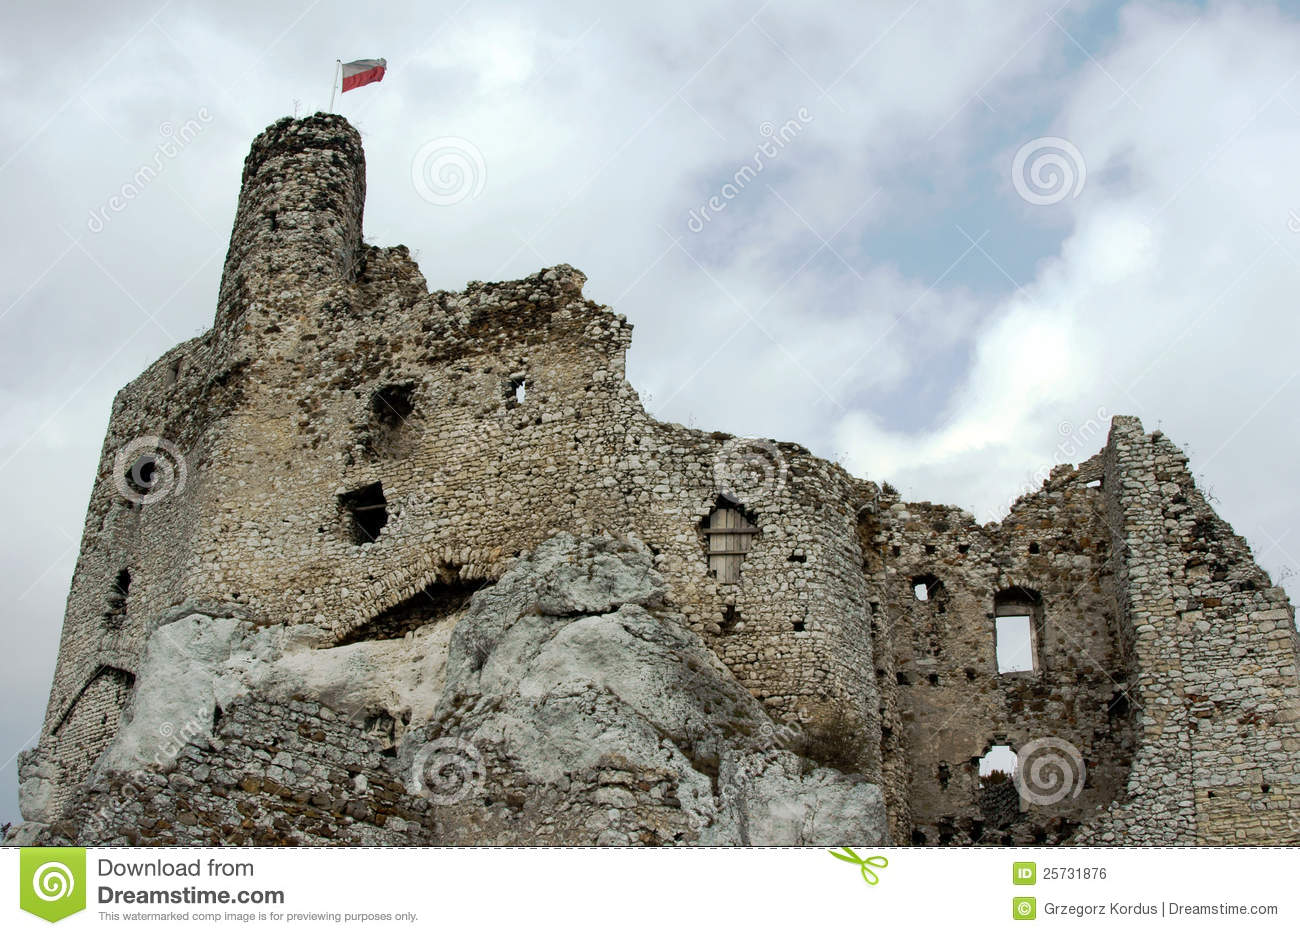 Ruined medieval castle with tower in Mirow